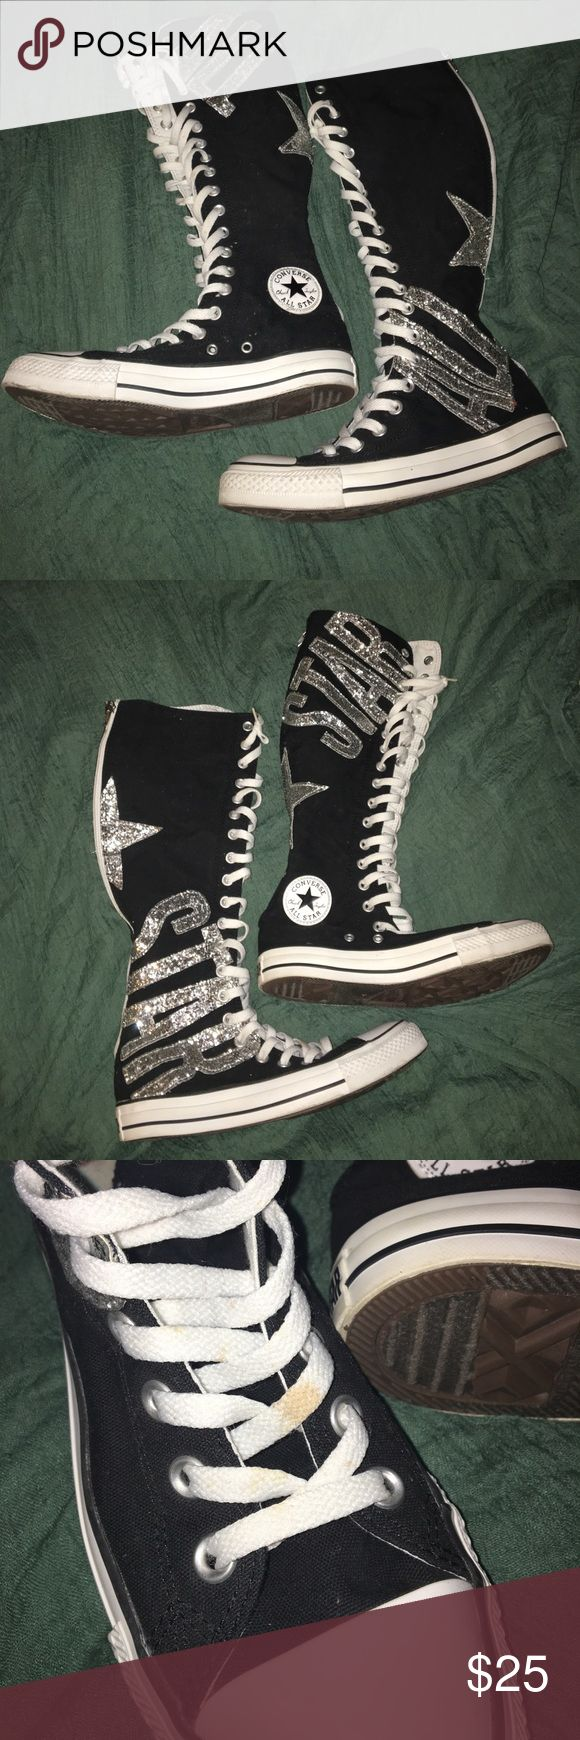 KNEE-HIGH CONVERSE ALL STARS!!!! ZIP UP AND LACE UP KNEE HIGH CONVERSE WITH GLITTER ACCENTS!! PRETTY MUCH BRAND NEW MINUS THE SPOT ON THE LACES AS PICTURED ✨✨✨✨ Converse Shoes